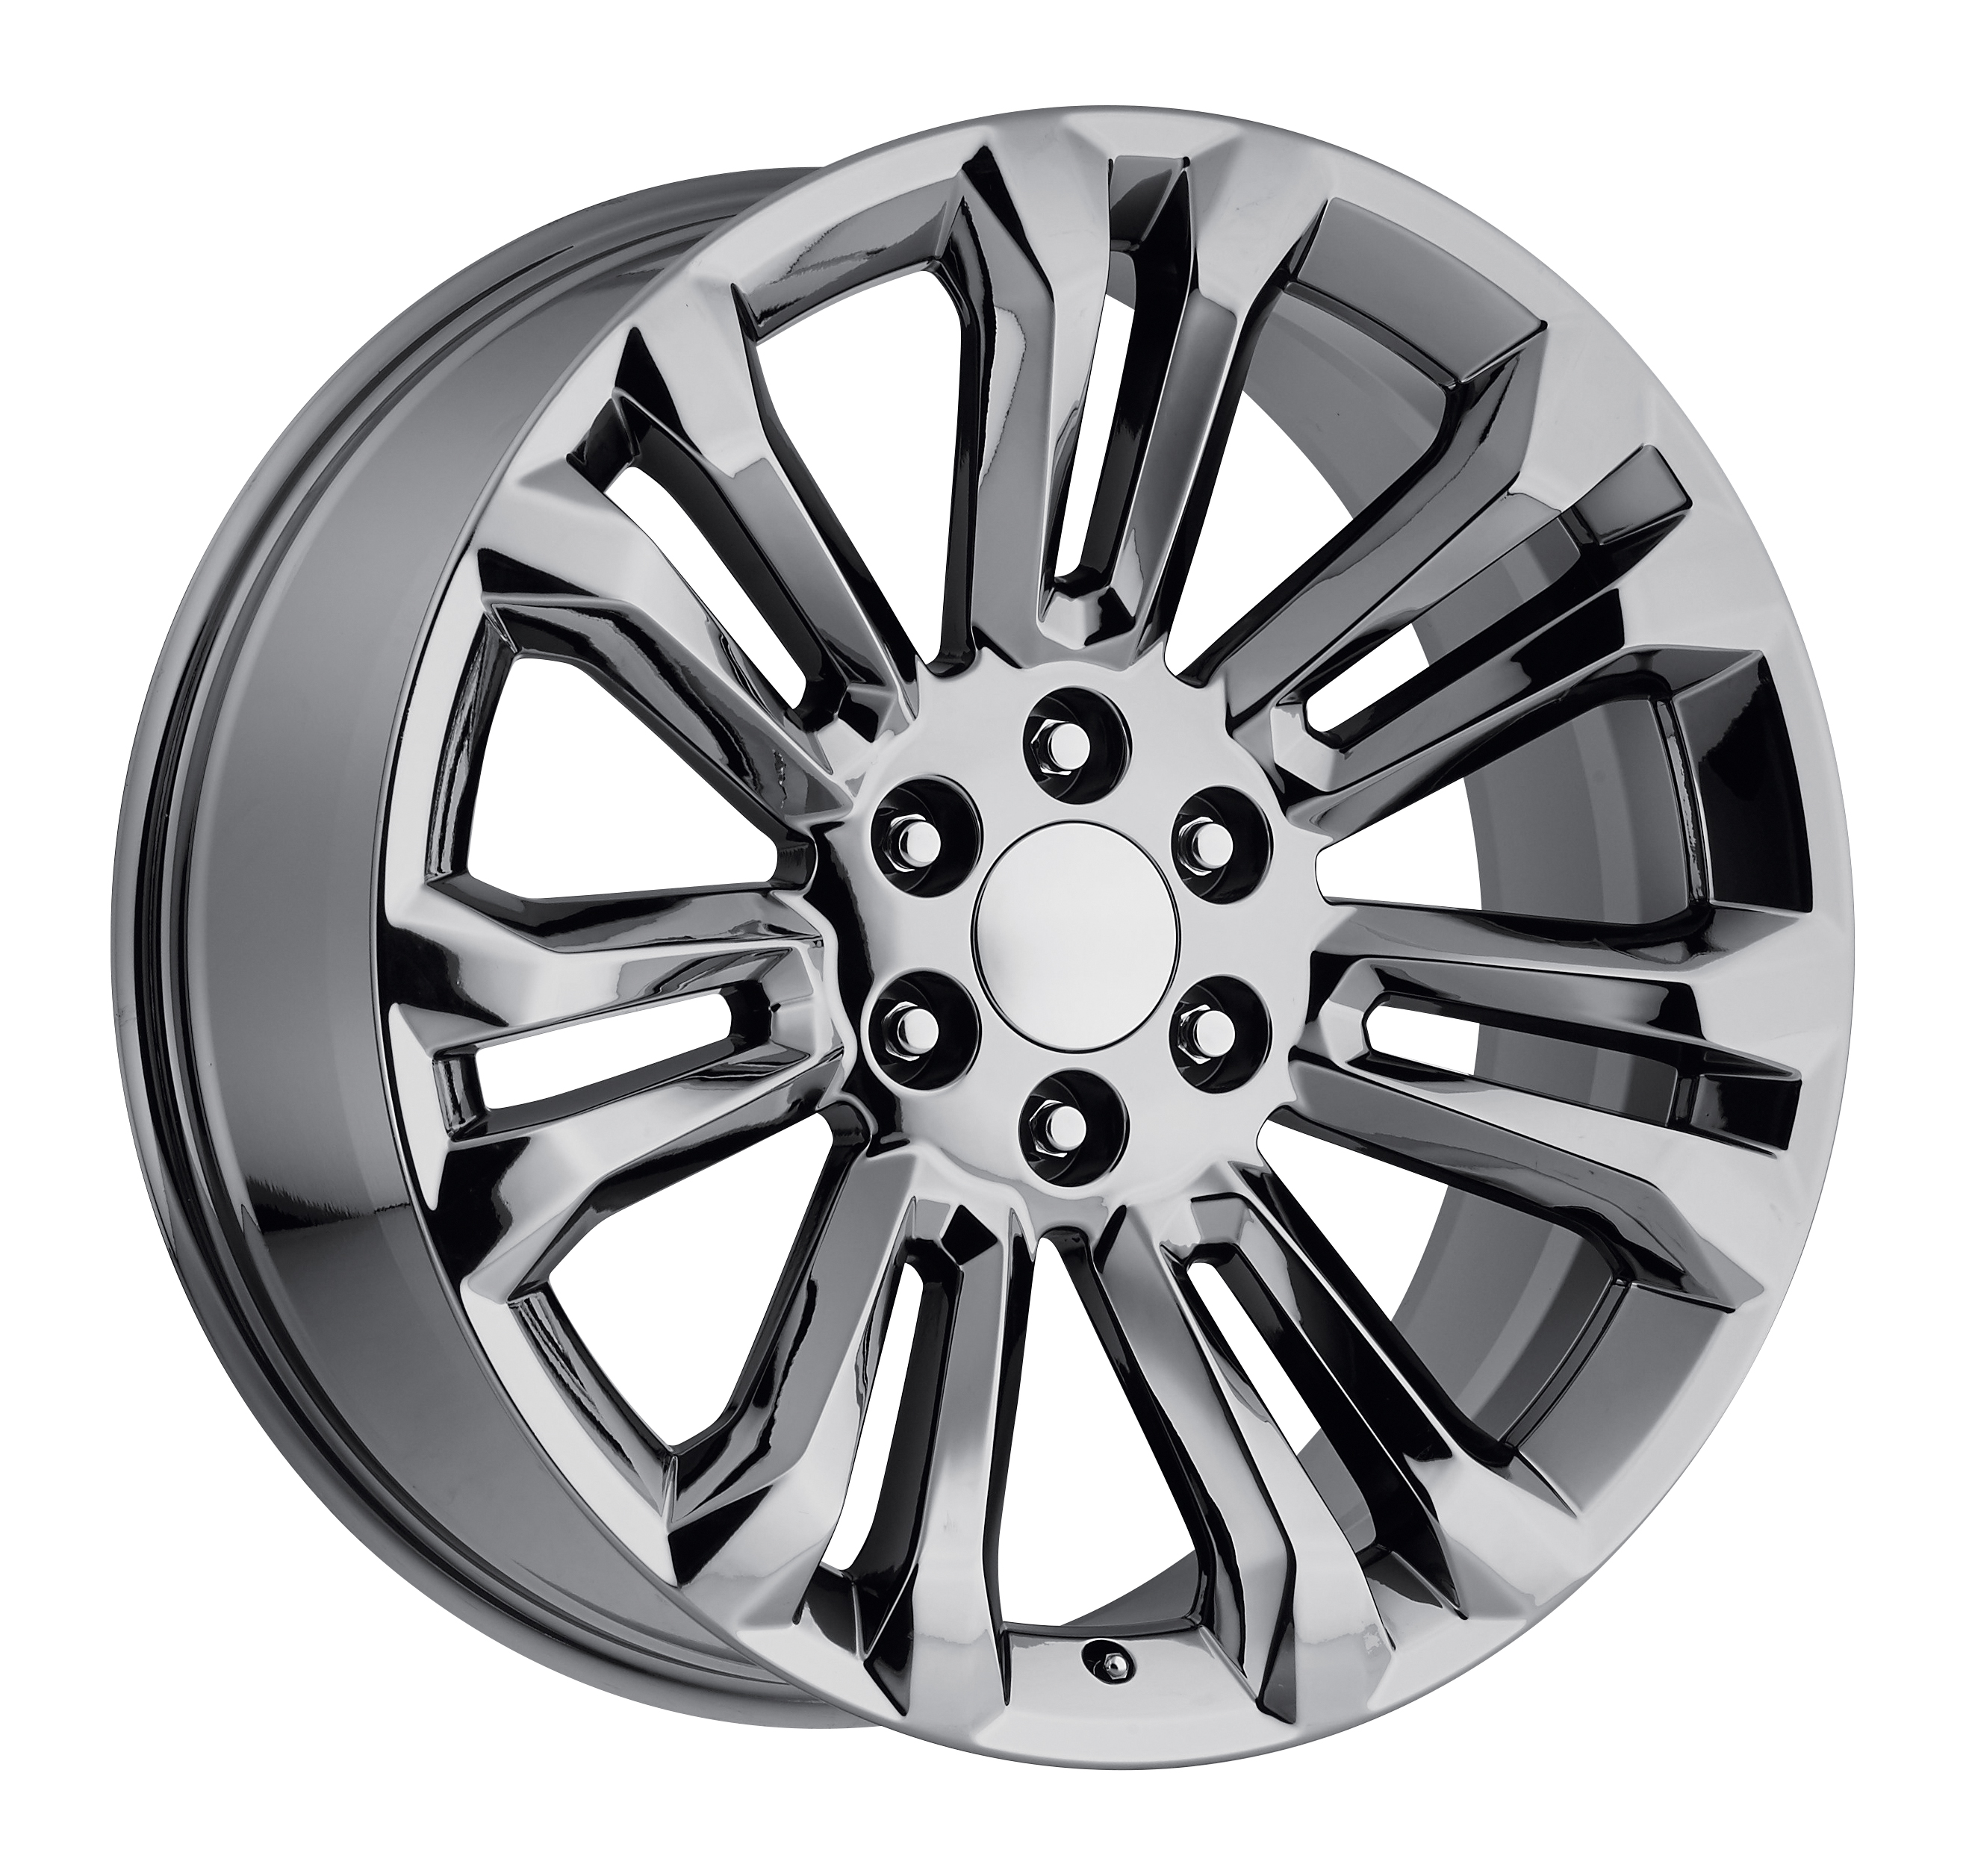 machined replicas wheels chevrolet motorsports face camaro product black image rims jk